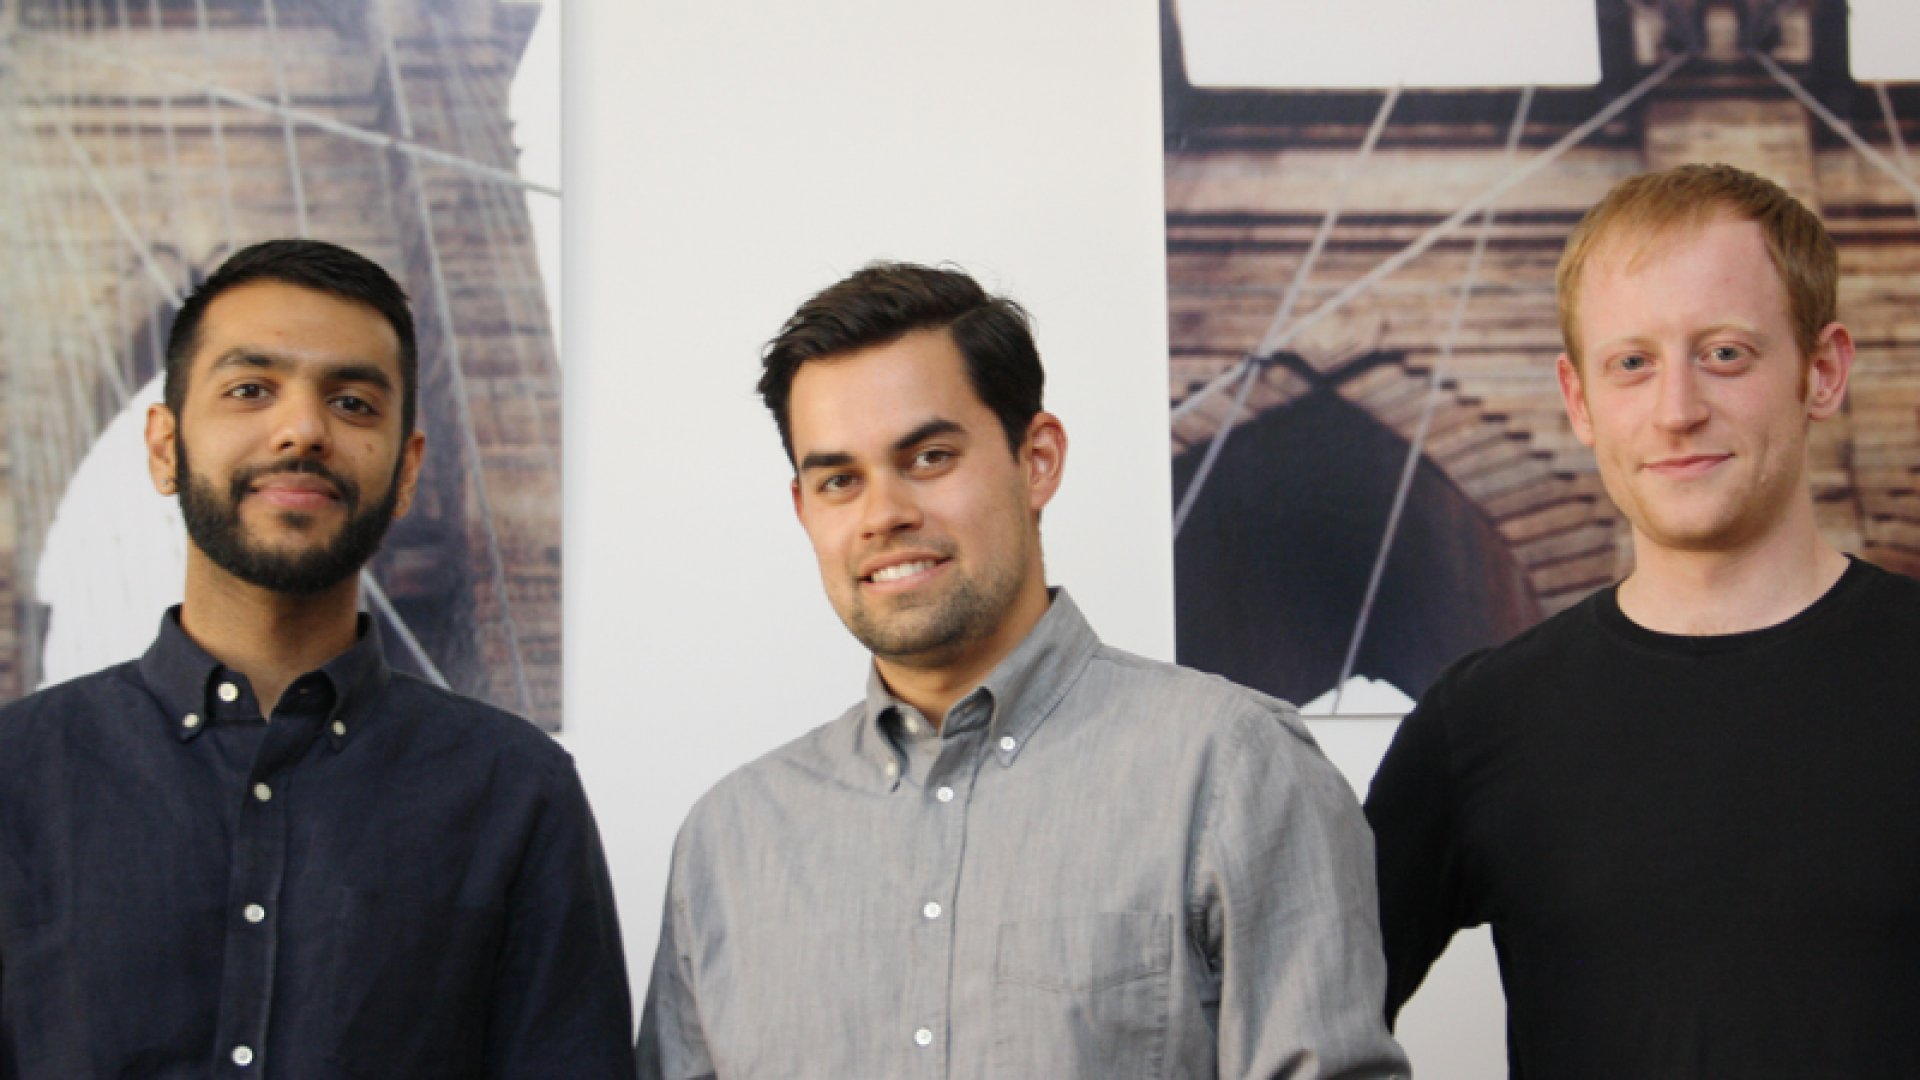 Samir Rayani, David Hoffman, and Alex White are the co-founders of big-data music business Next Big Sound.